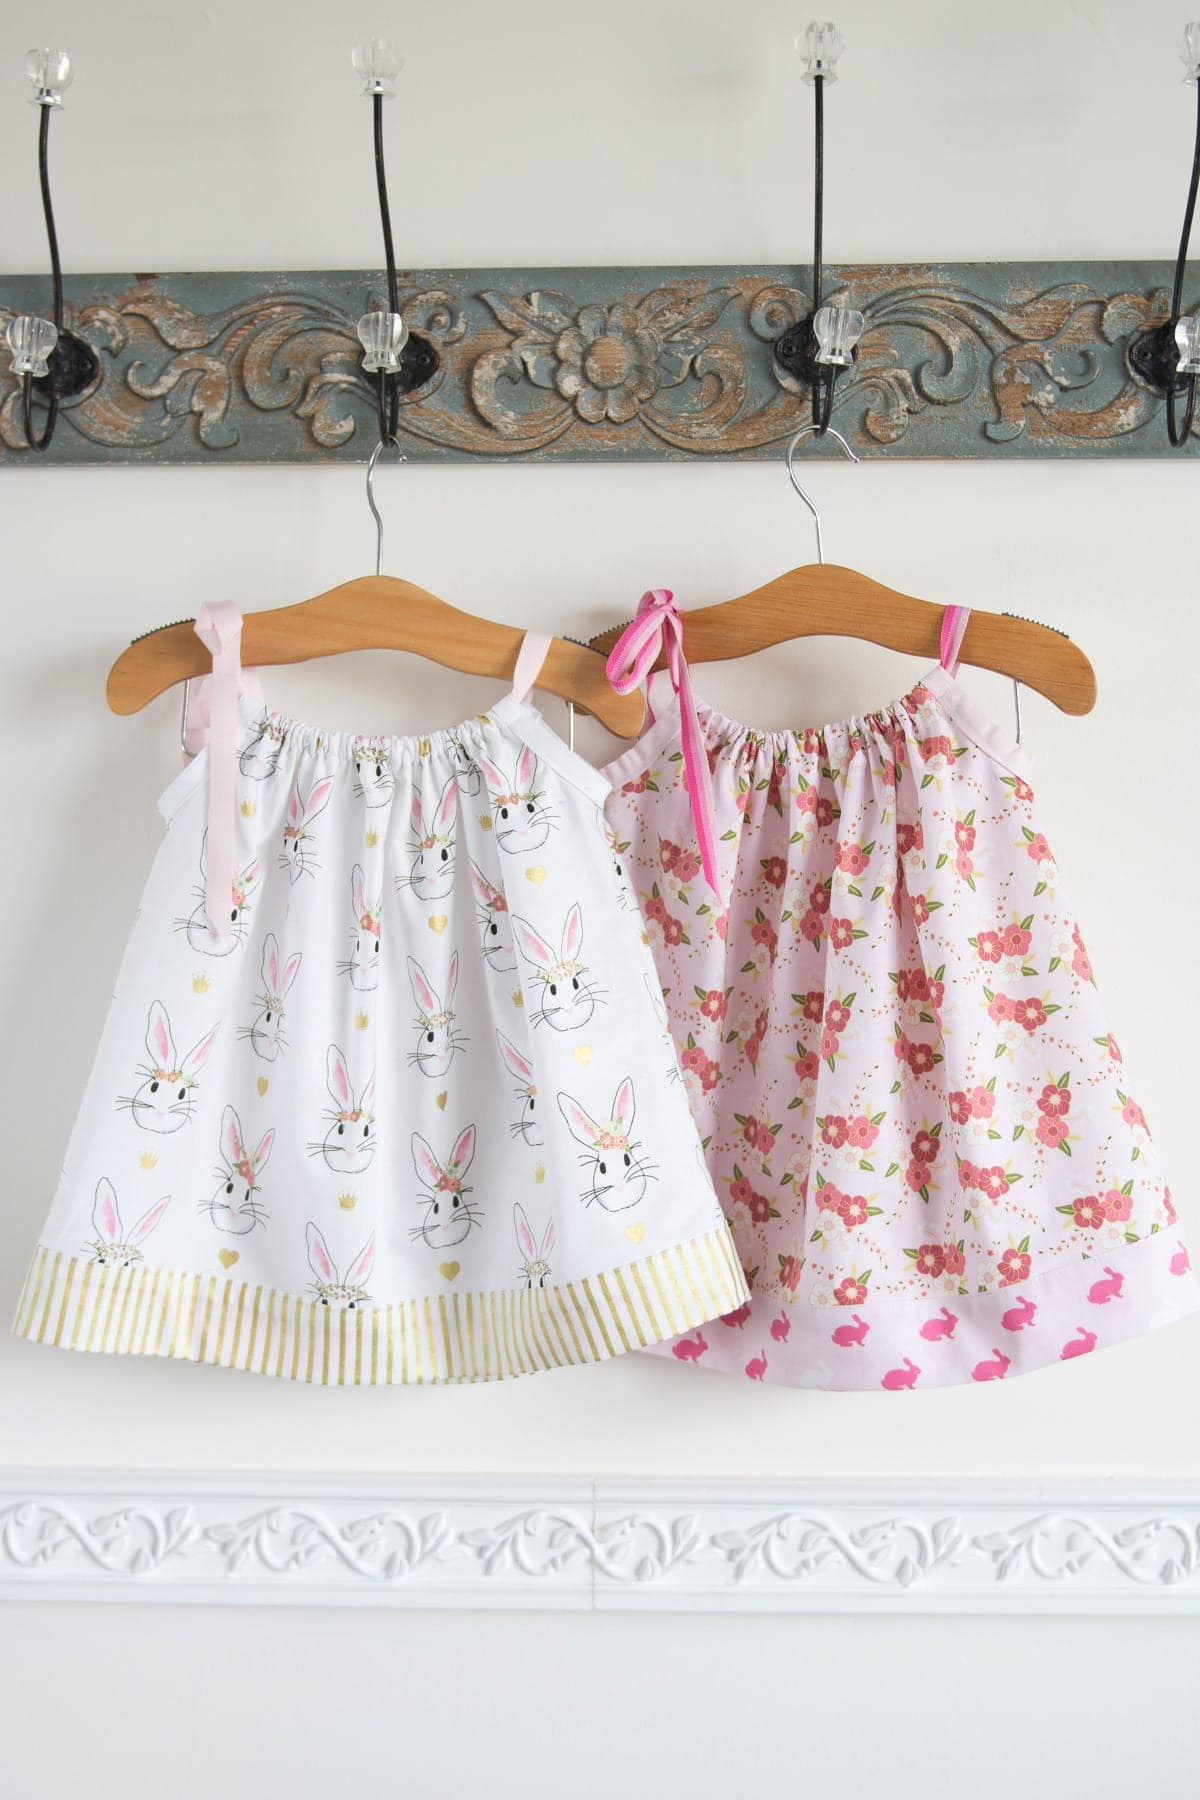 It's just a picture of Free Printable Pillowcase Dress Pattern throughout vintage